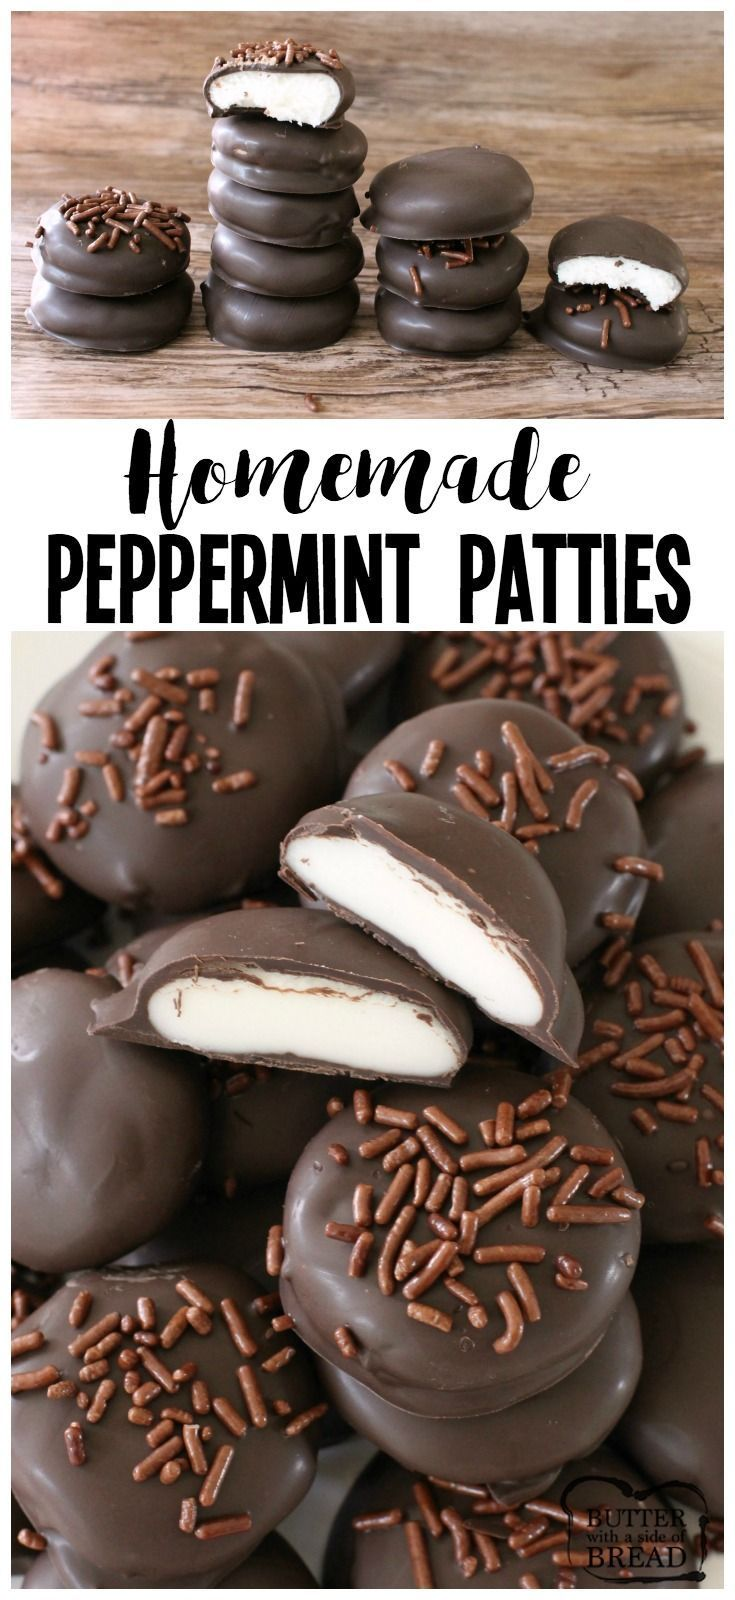 Homemade Peppermint Patties - Just 5 ingredients and they taste SO much better than store-bought! Perfect for holiday goodie plates! Butter With A Side of Bread